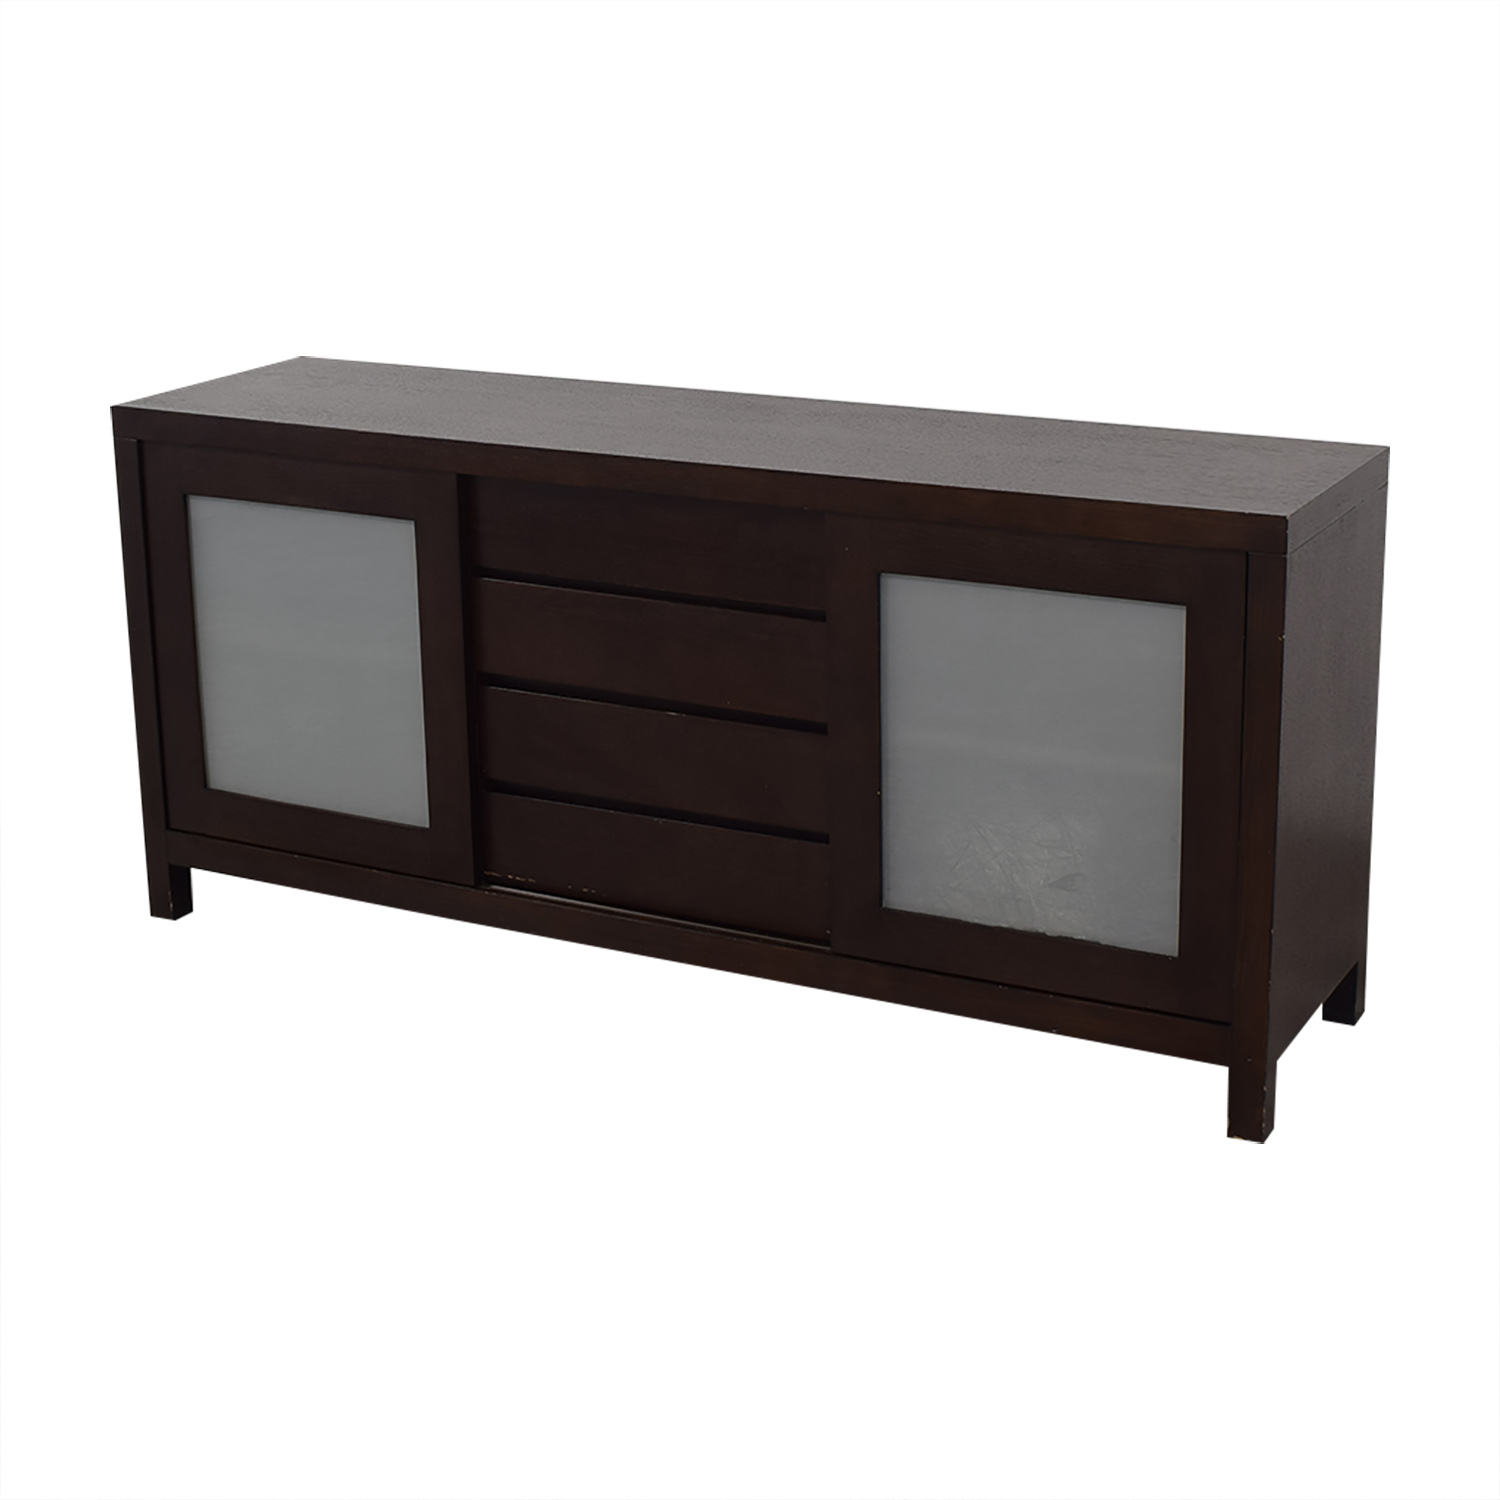 Crate & Barrel Crate & Barrel Sideboard with Cabinets discount